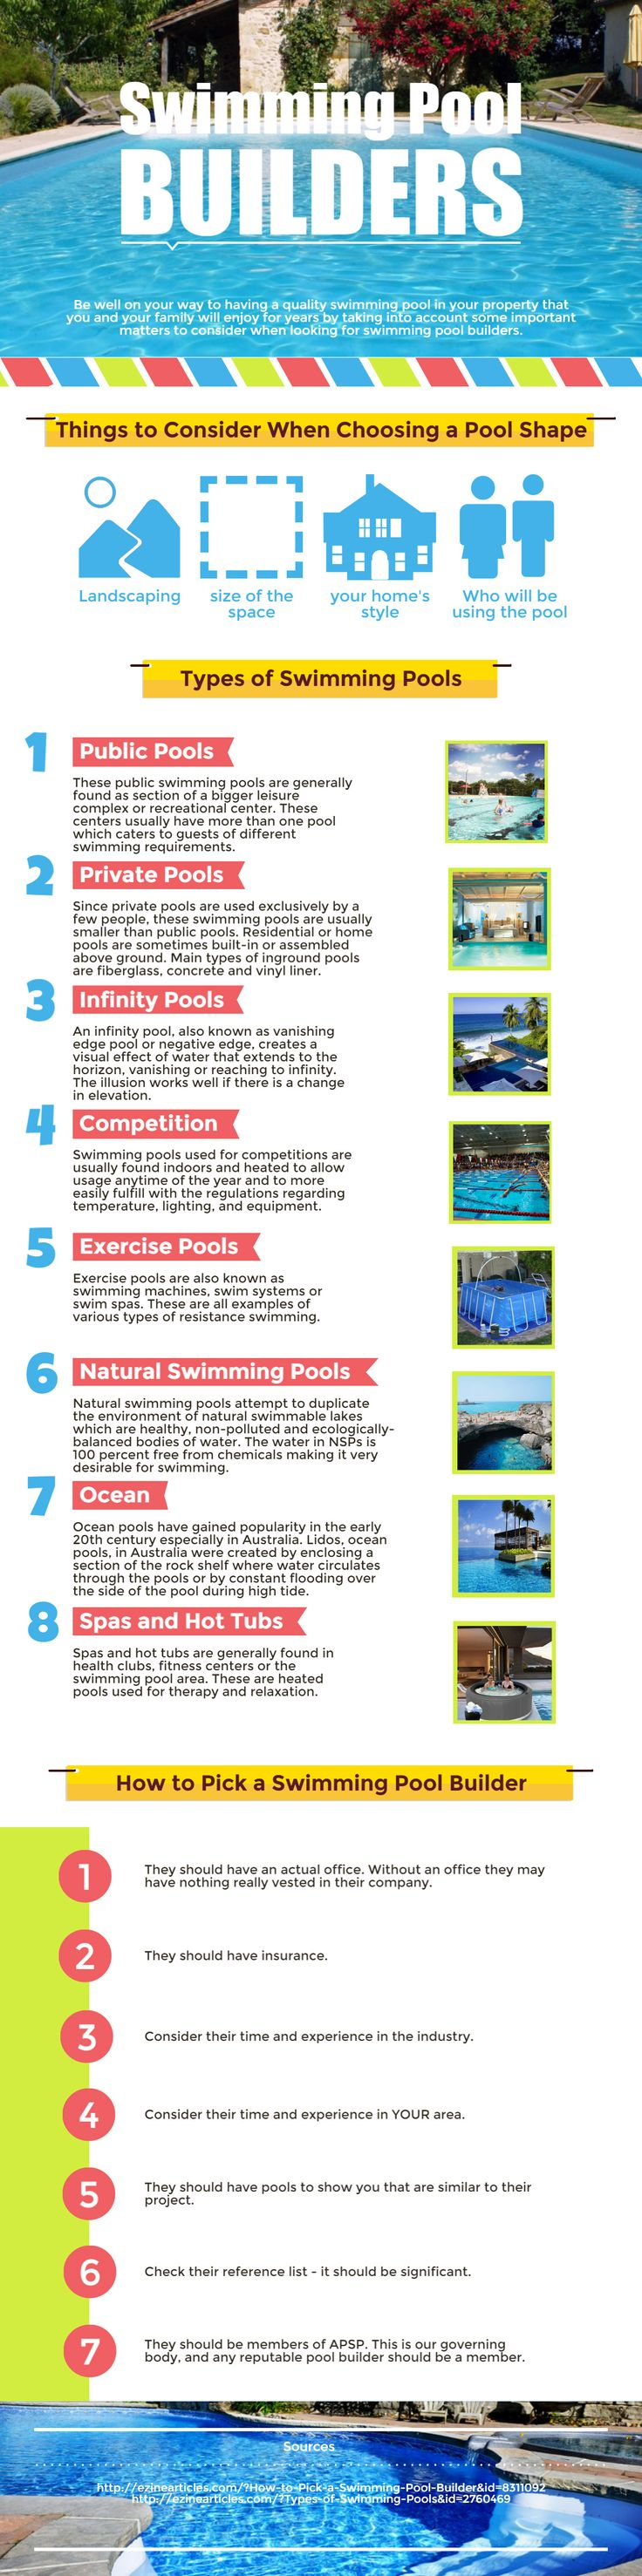 There's nothing quite like having your own swimming pool. In this infographic, you'll find what things you consider when choosing a pool shape and how to choose a swimming pool? Here is a brief description of types and features of a swimming pool.